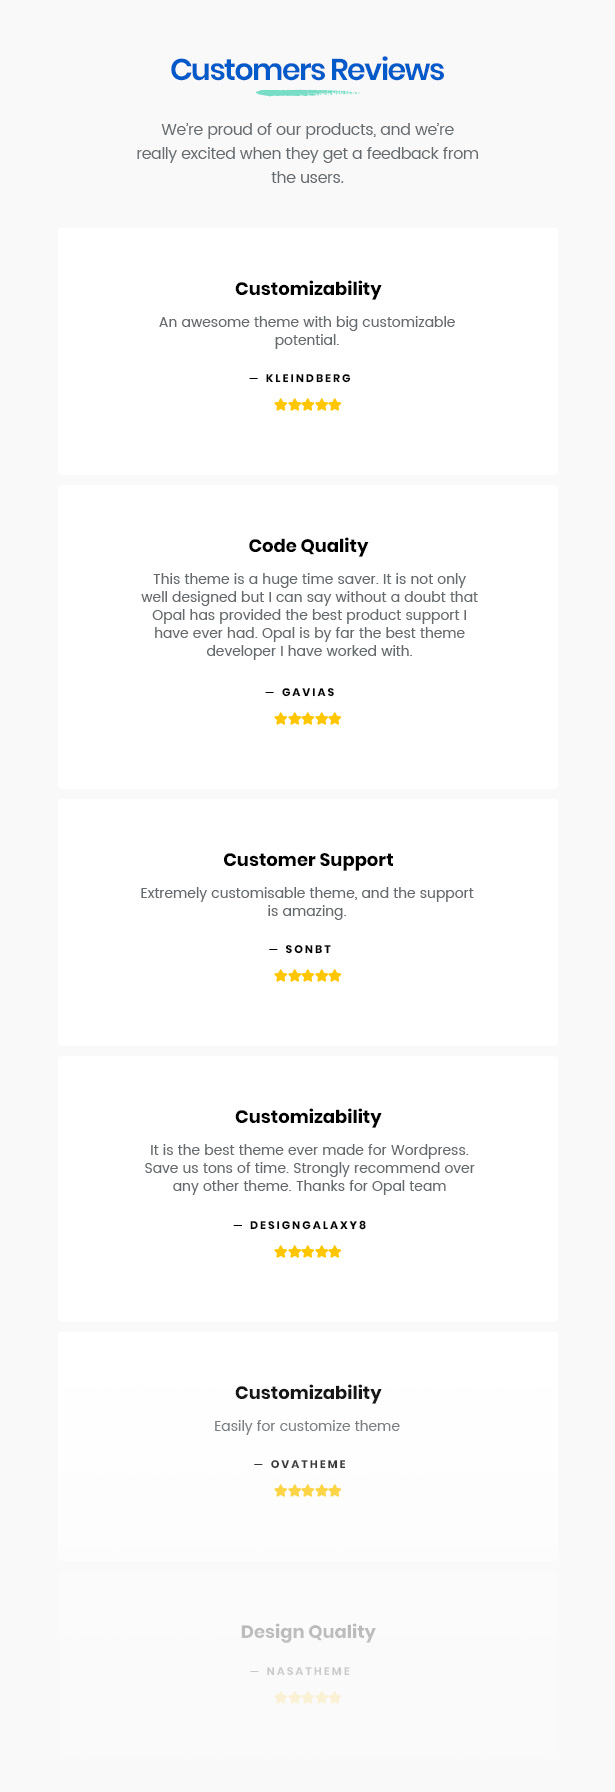 Best rated Woocommerce Themes Make Customers Happy